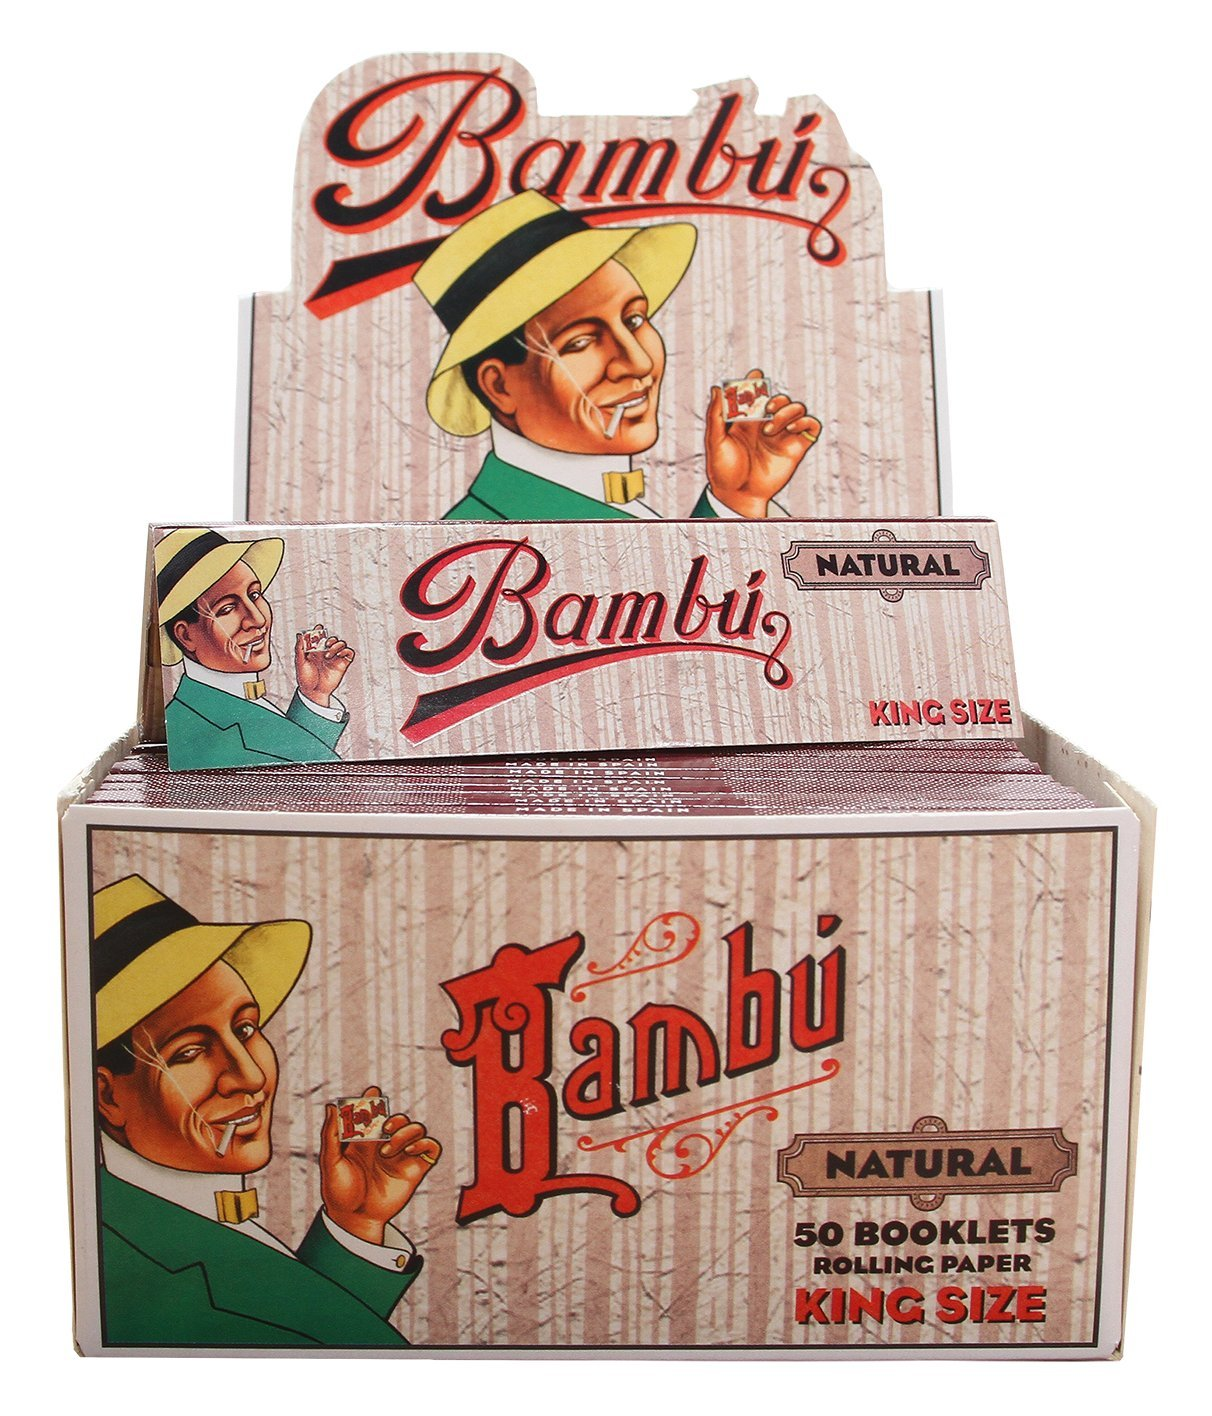 Bambu Natural King Size Rolling Papers, 50 Booklets